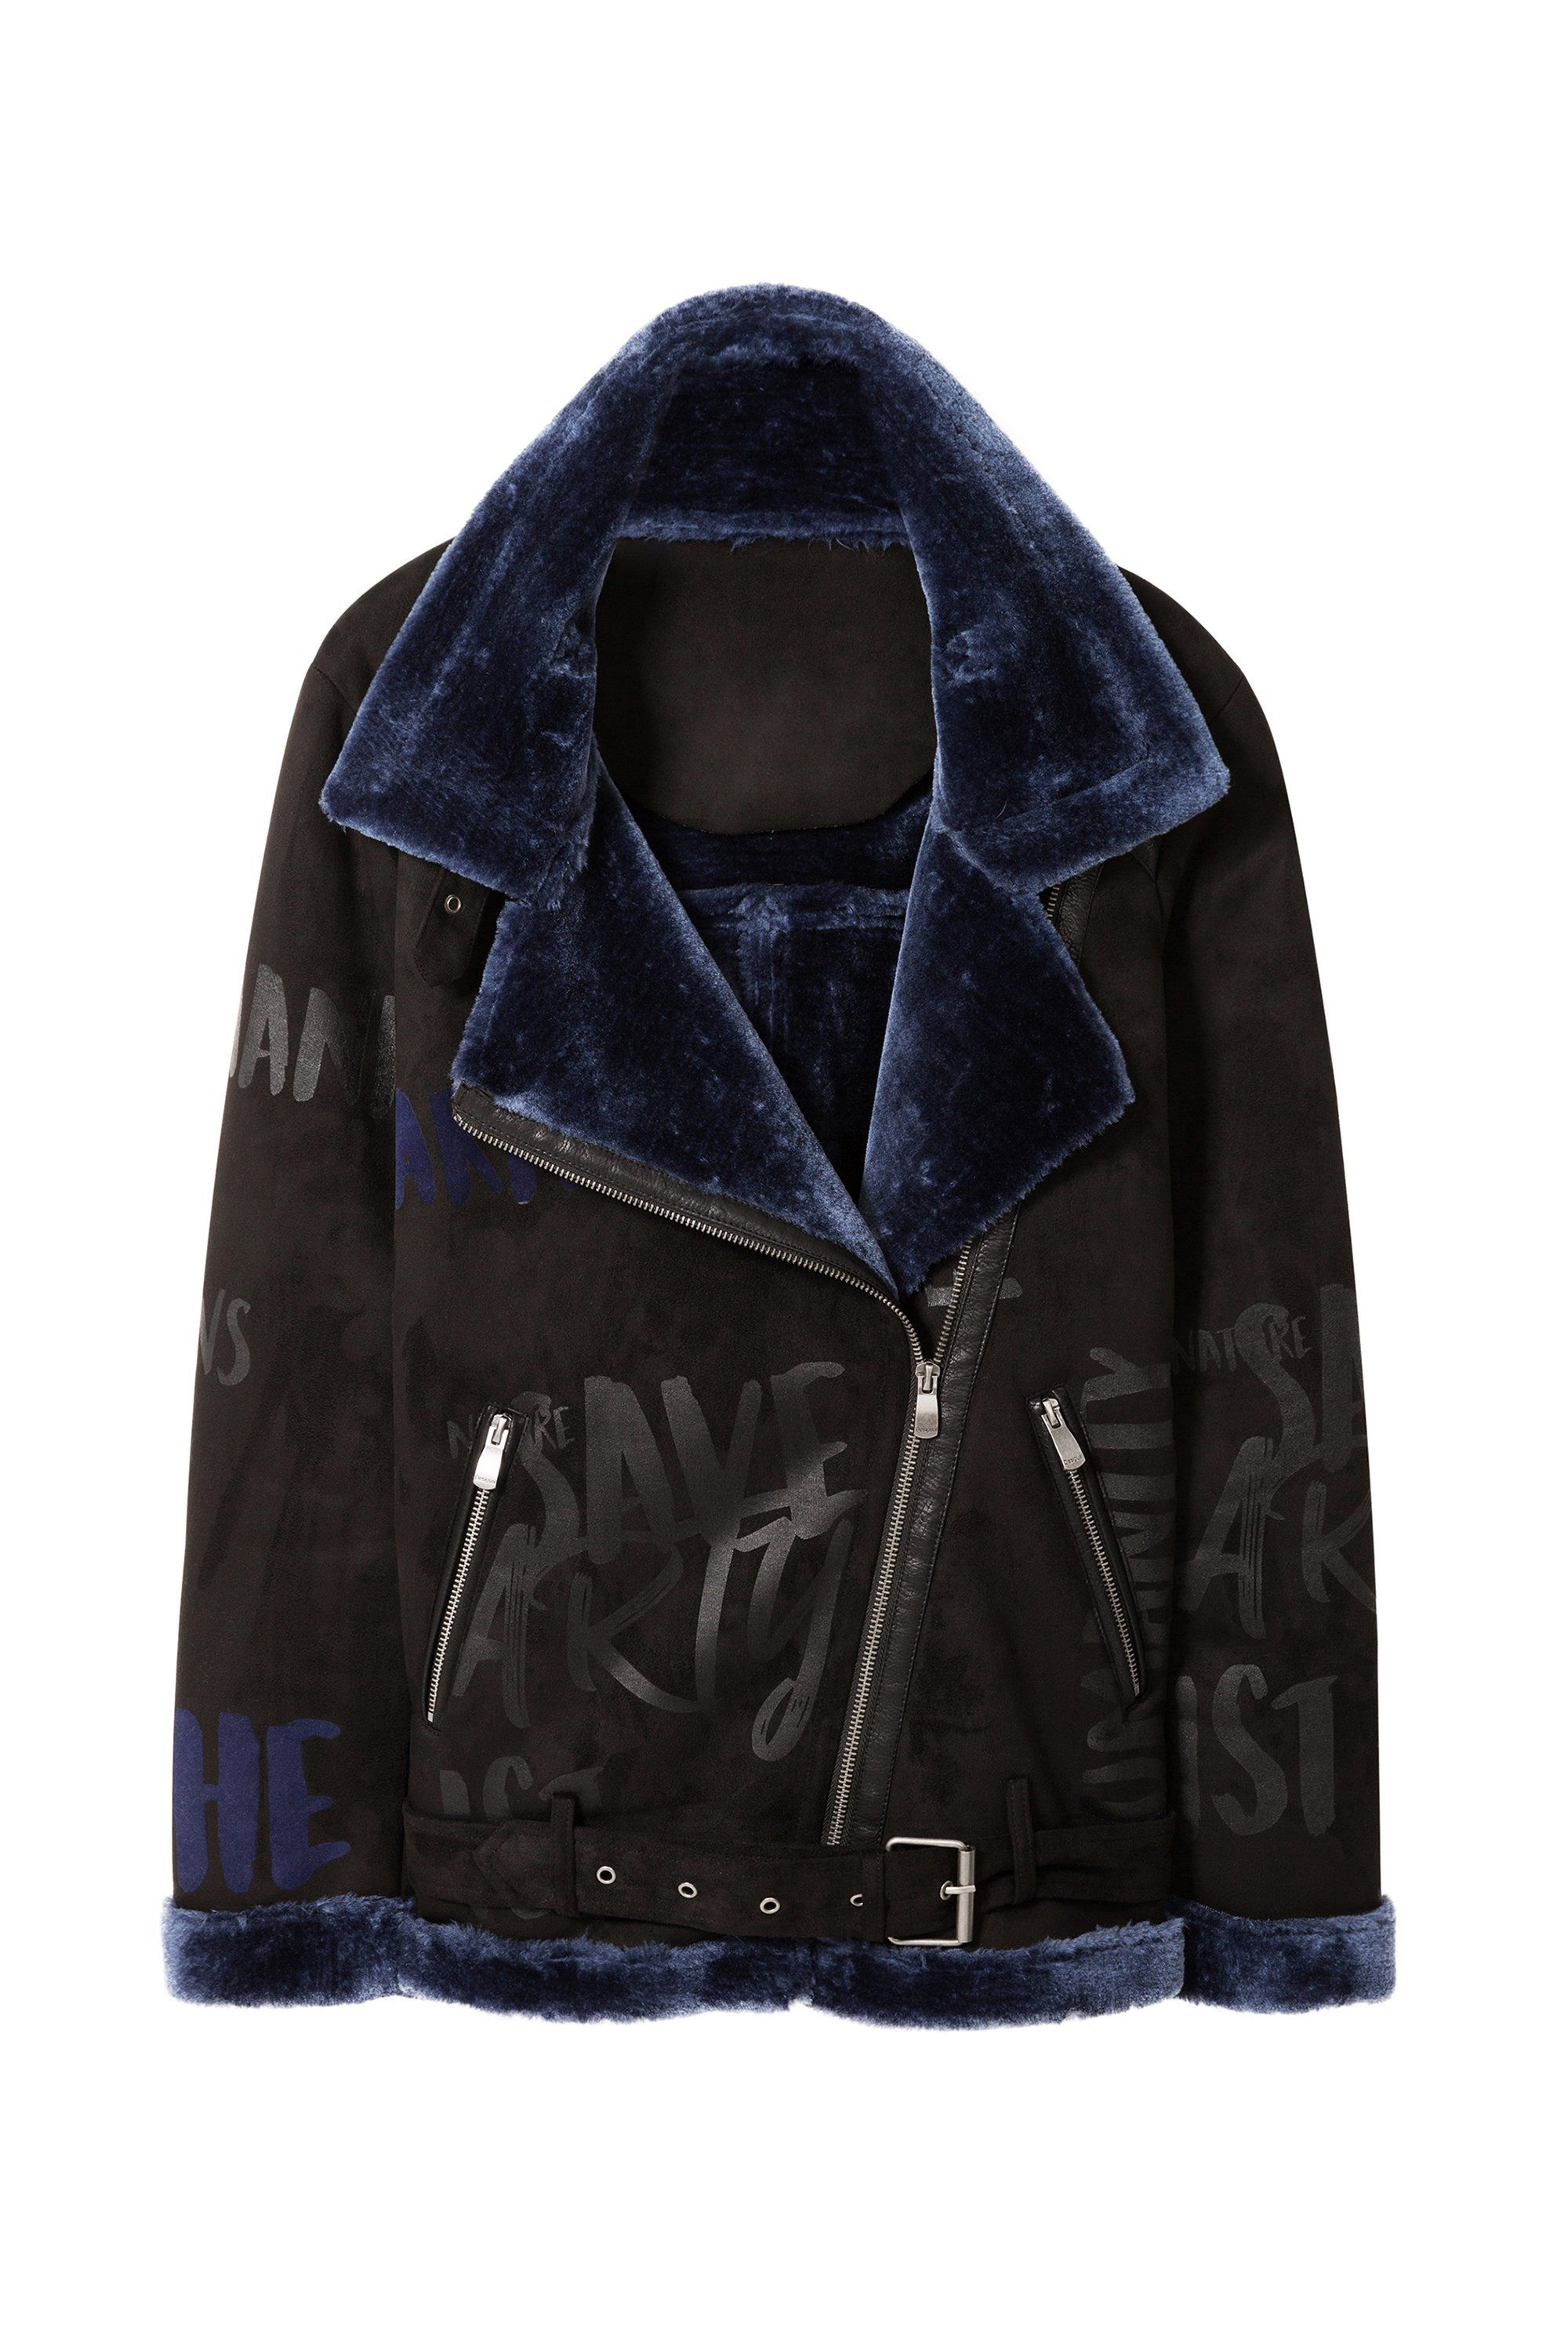 Desigual TAMPA jacket. Faux leather and soft blue faux fur